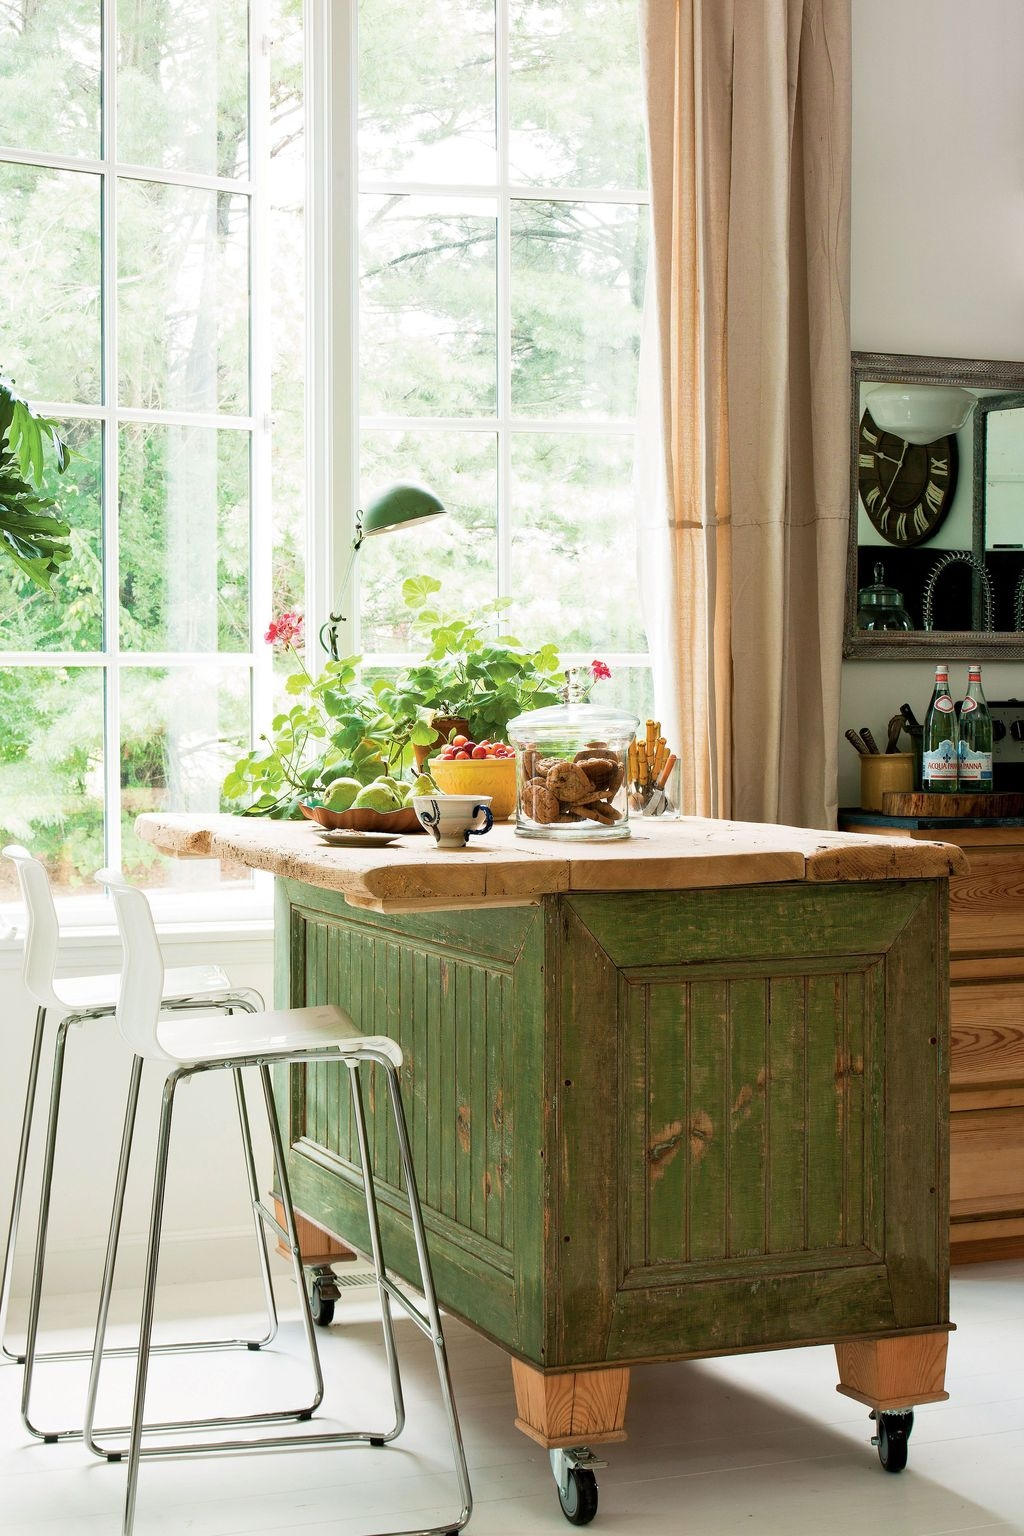 Awesome Rustic Kitchen Island Design Ideas 25